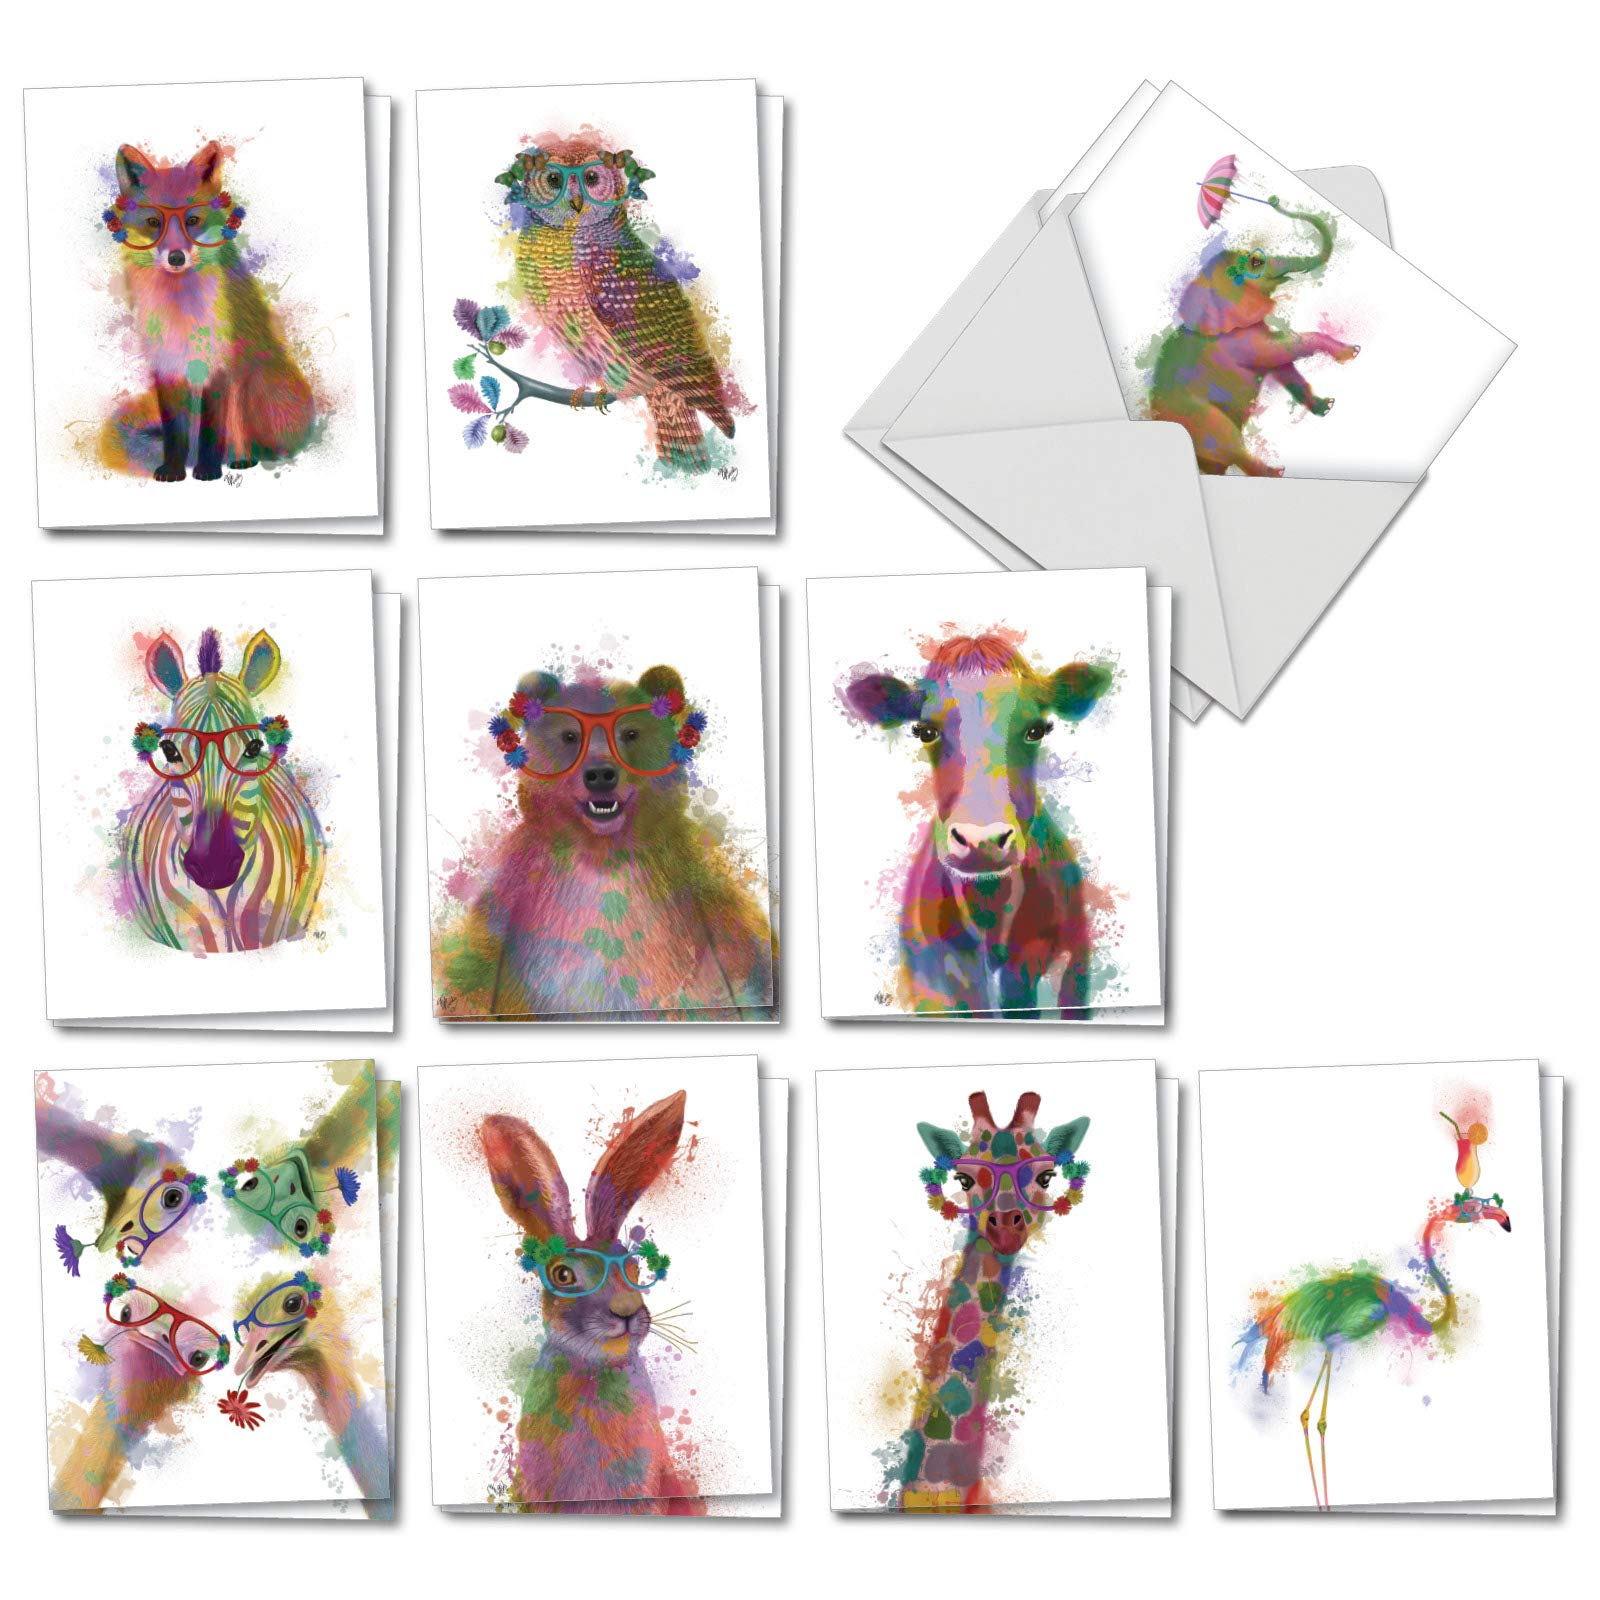 Funky Rainbow Wildlife - 20 Watercolor Blank Note Cards with Envelopes (4 x 5.12 Inch) - Boxed All Occasion Animal Cards - Cute Assorted Notecard Set for Kids (2 Each, 10 Designs) AM4948OCB-B2x10